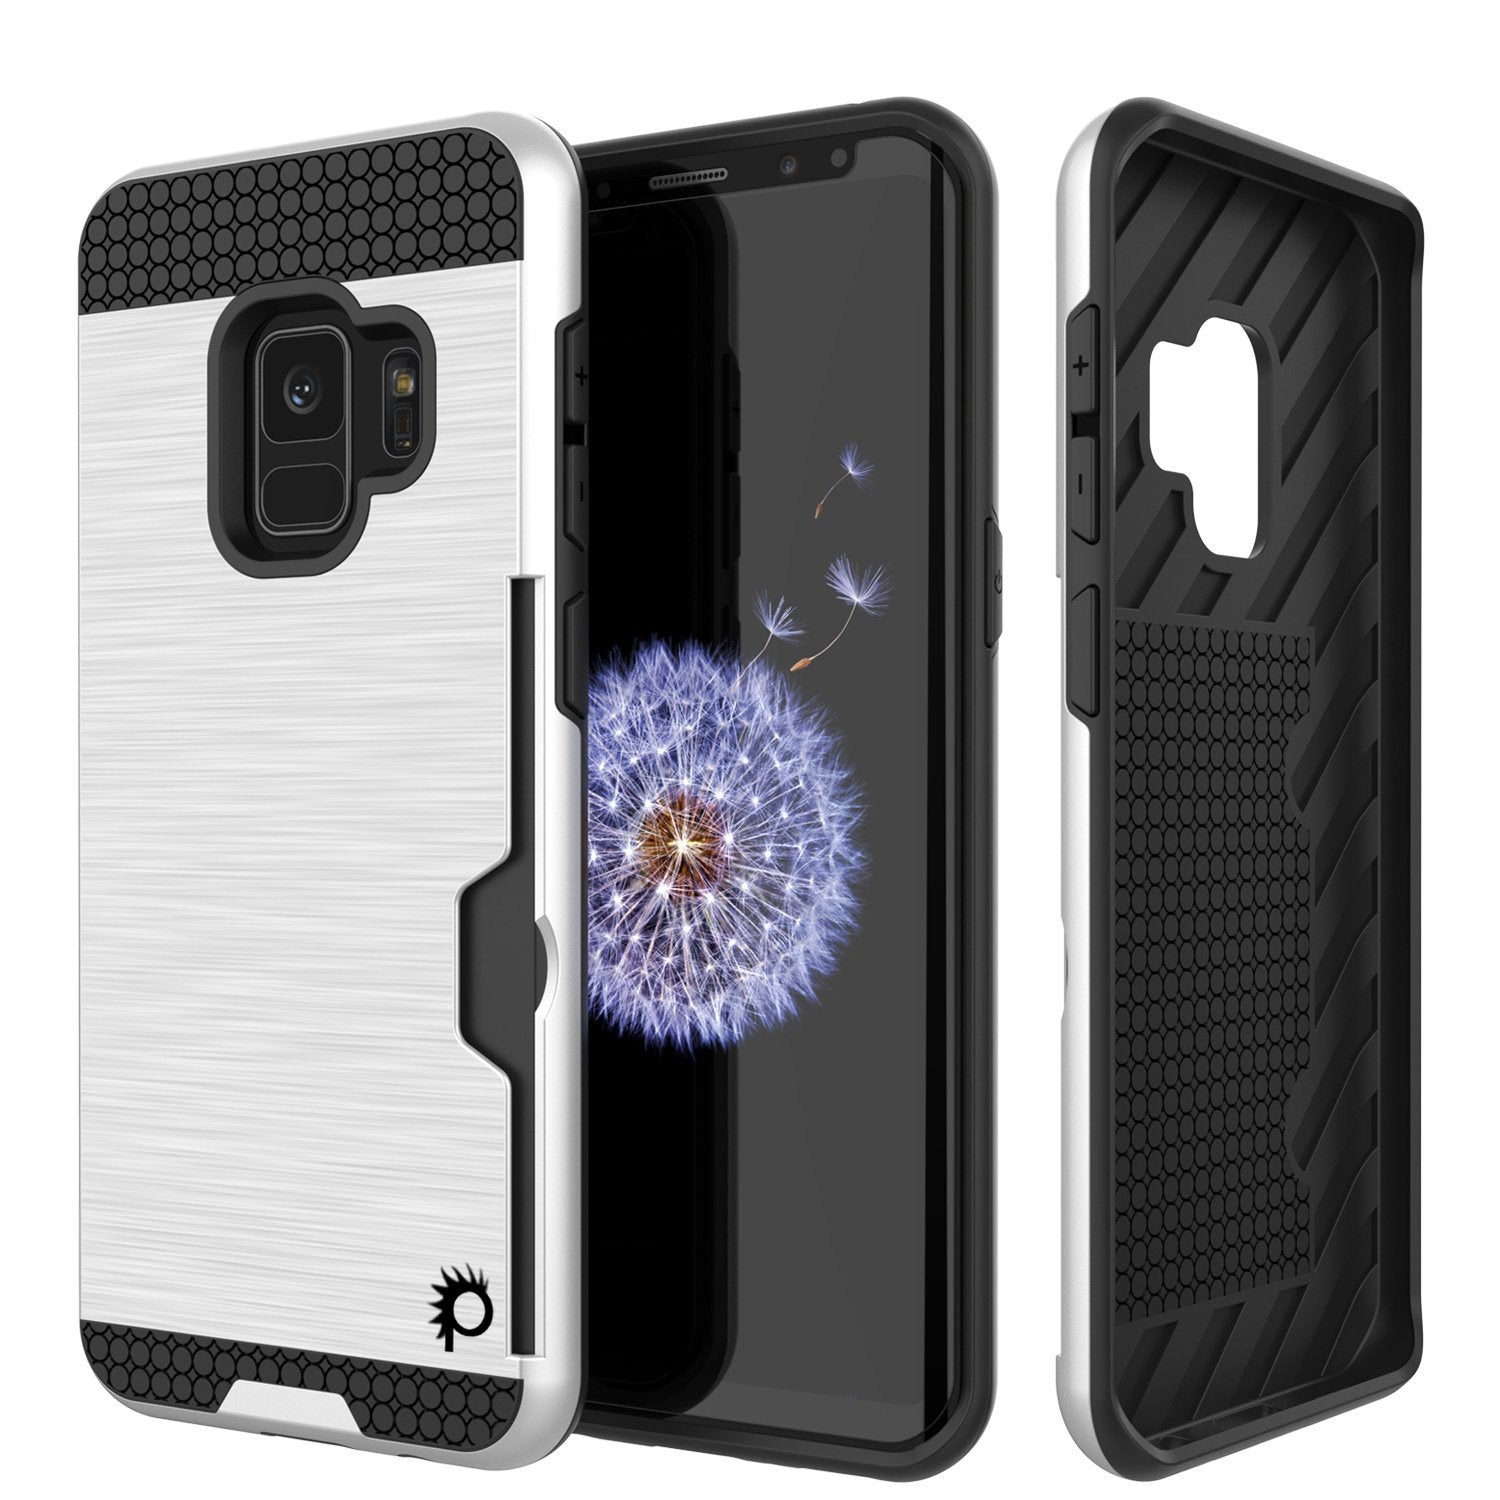 Galaxy S9 Case, PUNKcase [SLOT Series] [Slim Fit] Dual-Layer Armor Cover w/Integrated Anti-Shock System, Credit Card Slot & Screen Protector [White]